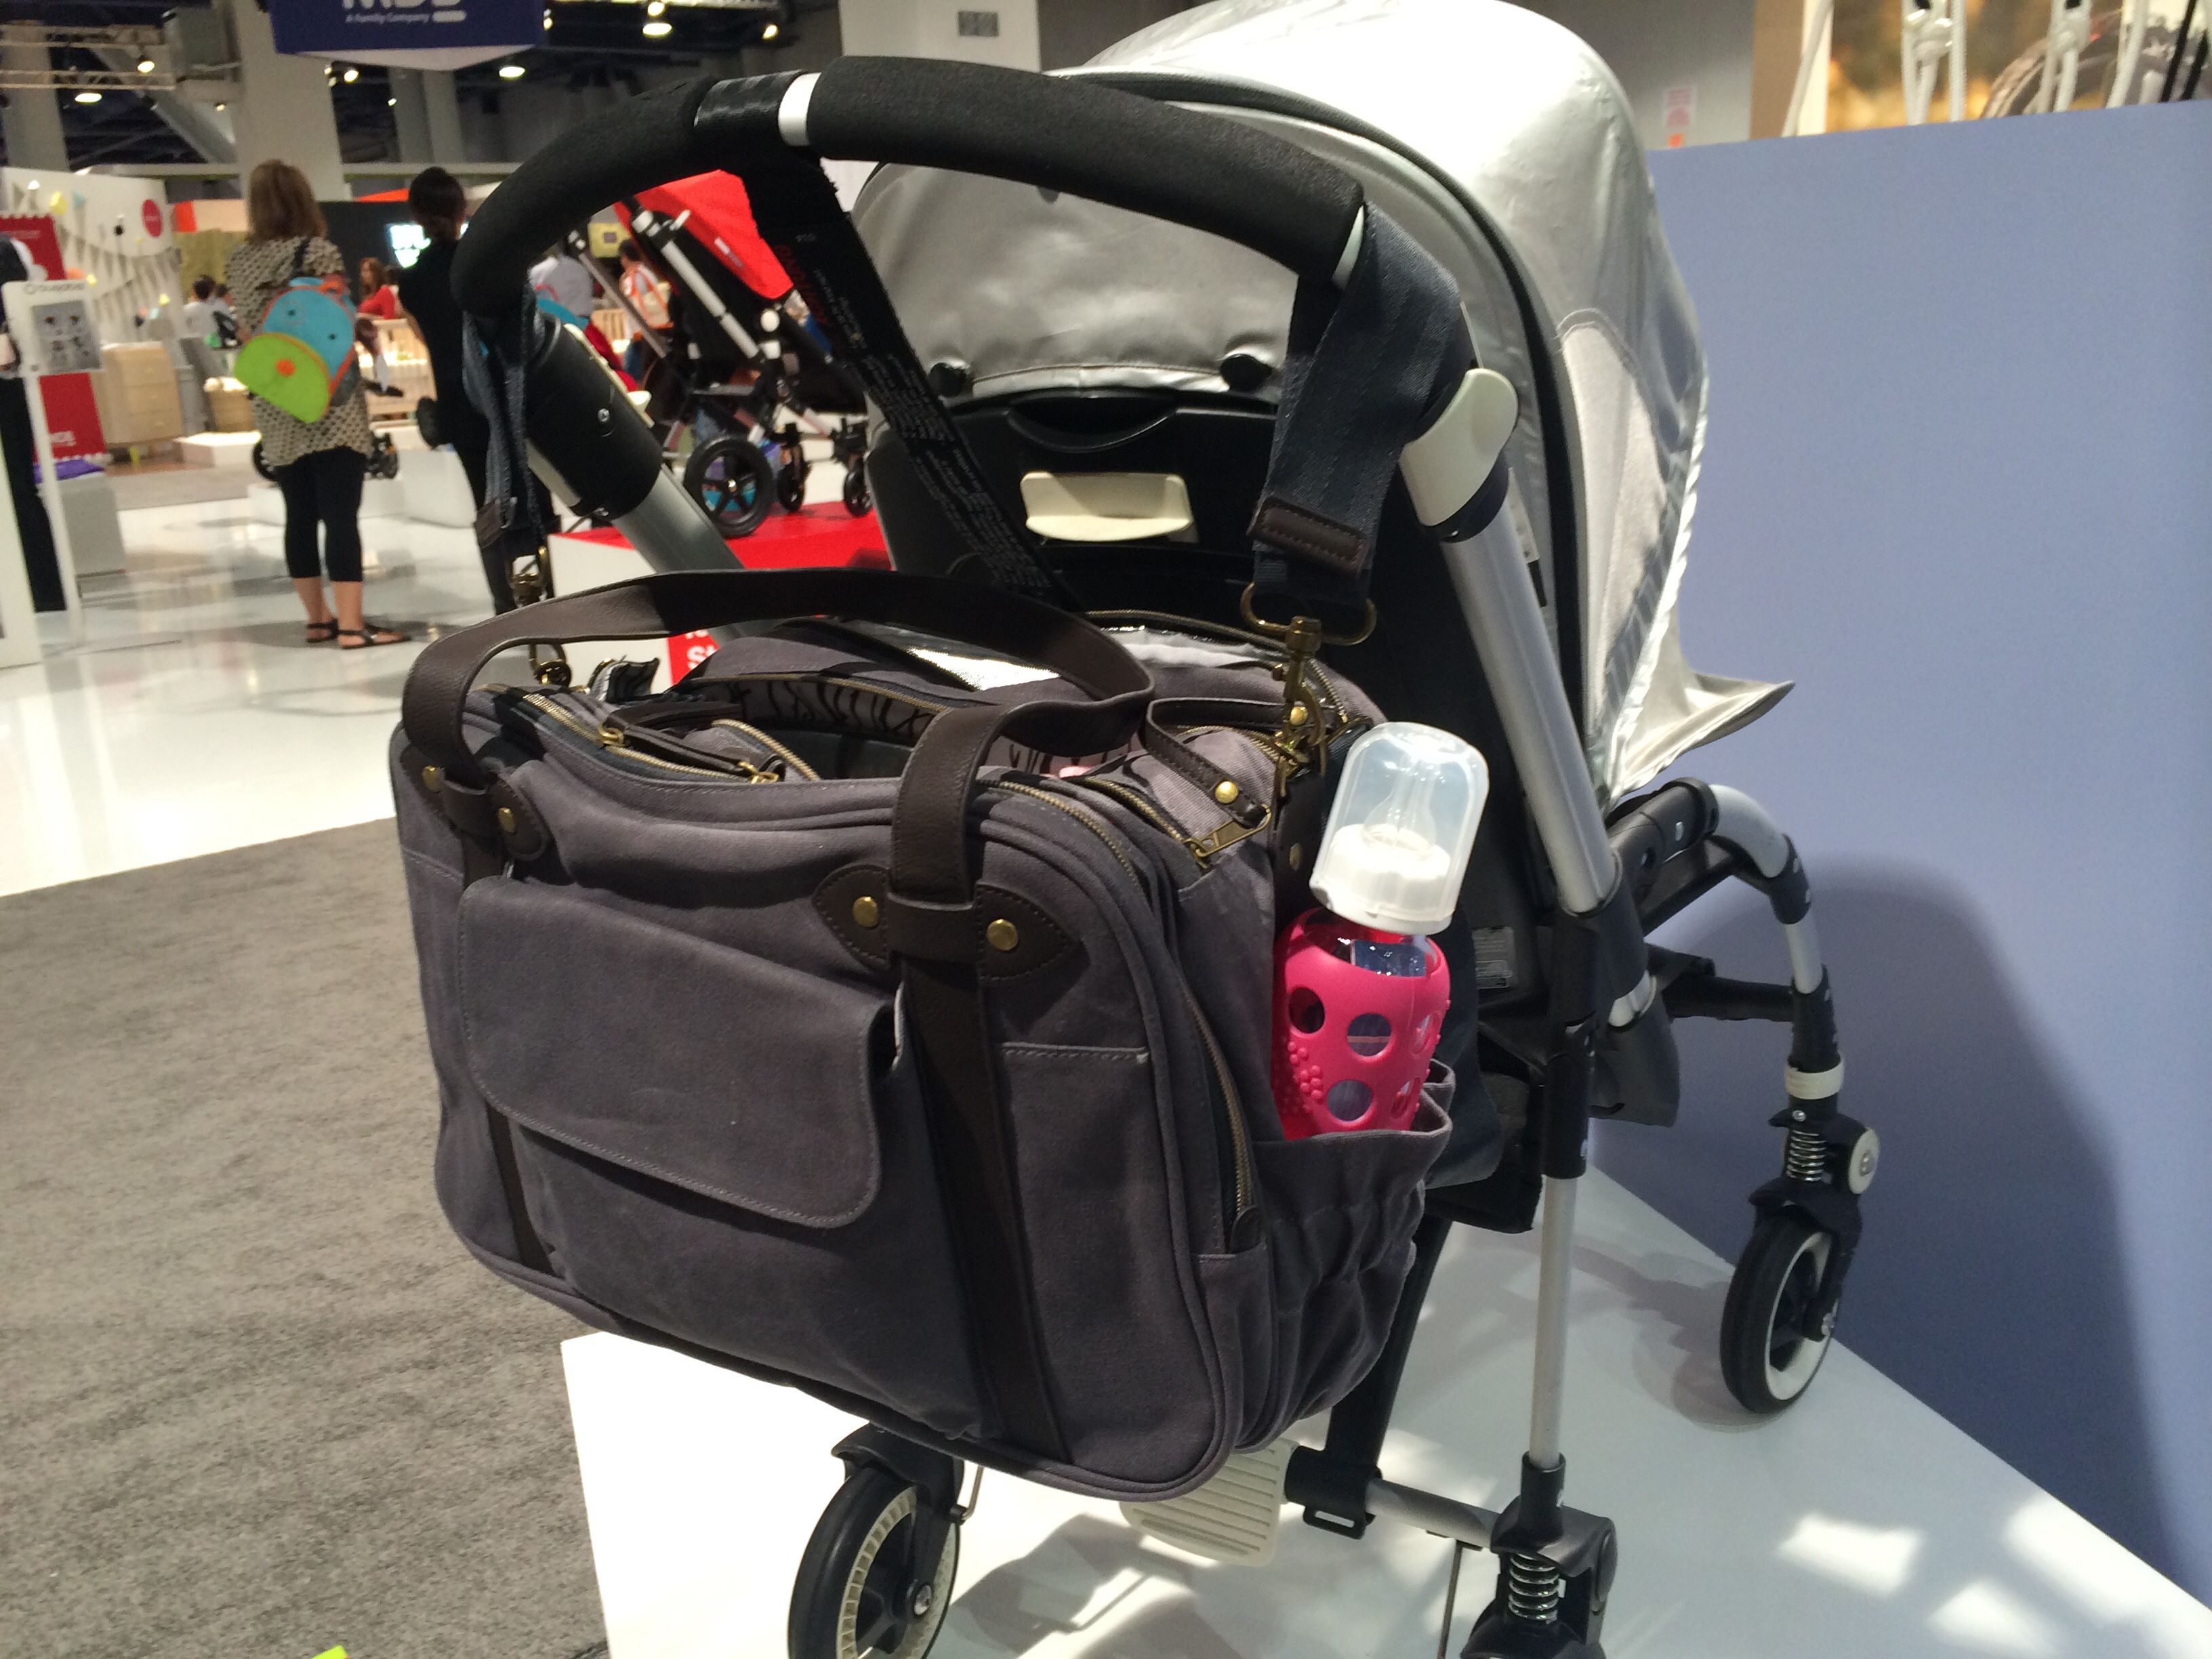 Our Soyoung Charlie Bag In Action The Diaper Both Mom And Dad Will Hily Carry